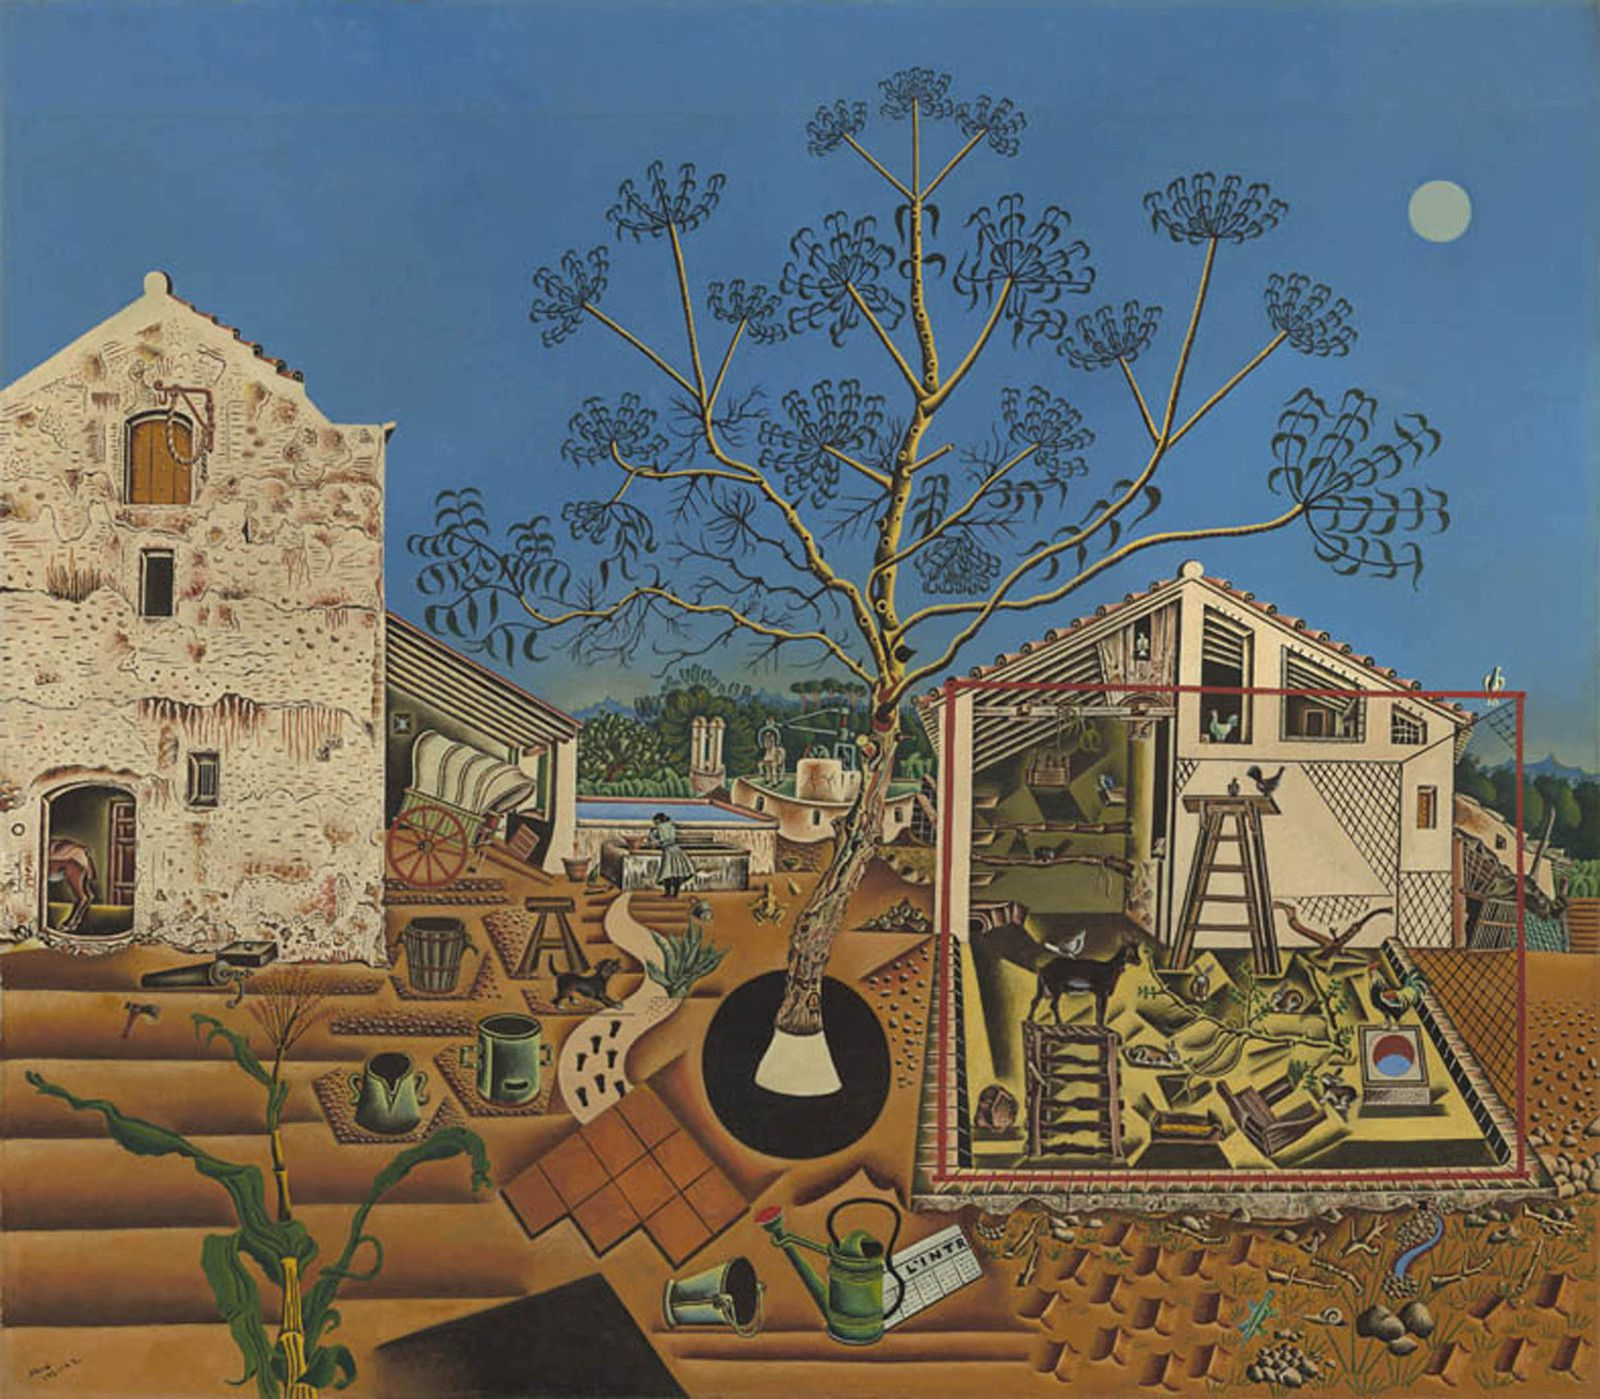 """La Ferme"",  1921-1922 de Joan MIRO - Washington, NG. © Successió Miró _ Adagp, Paris, 2018. National Gallery of Art, Washington"